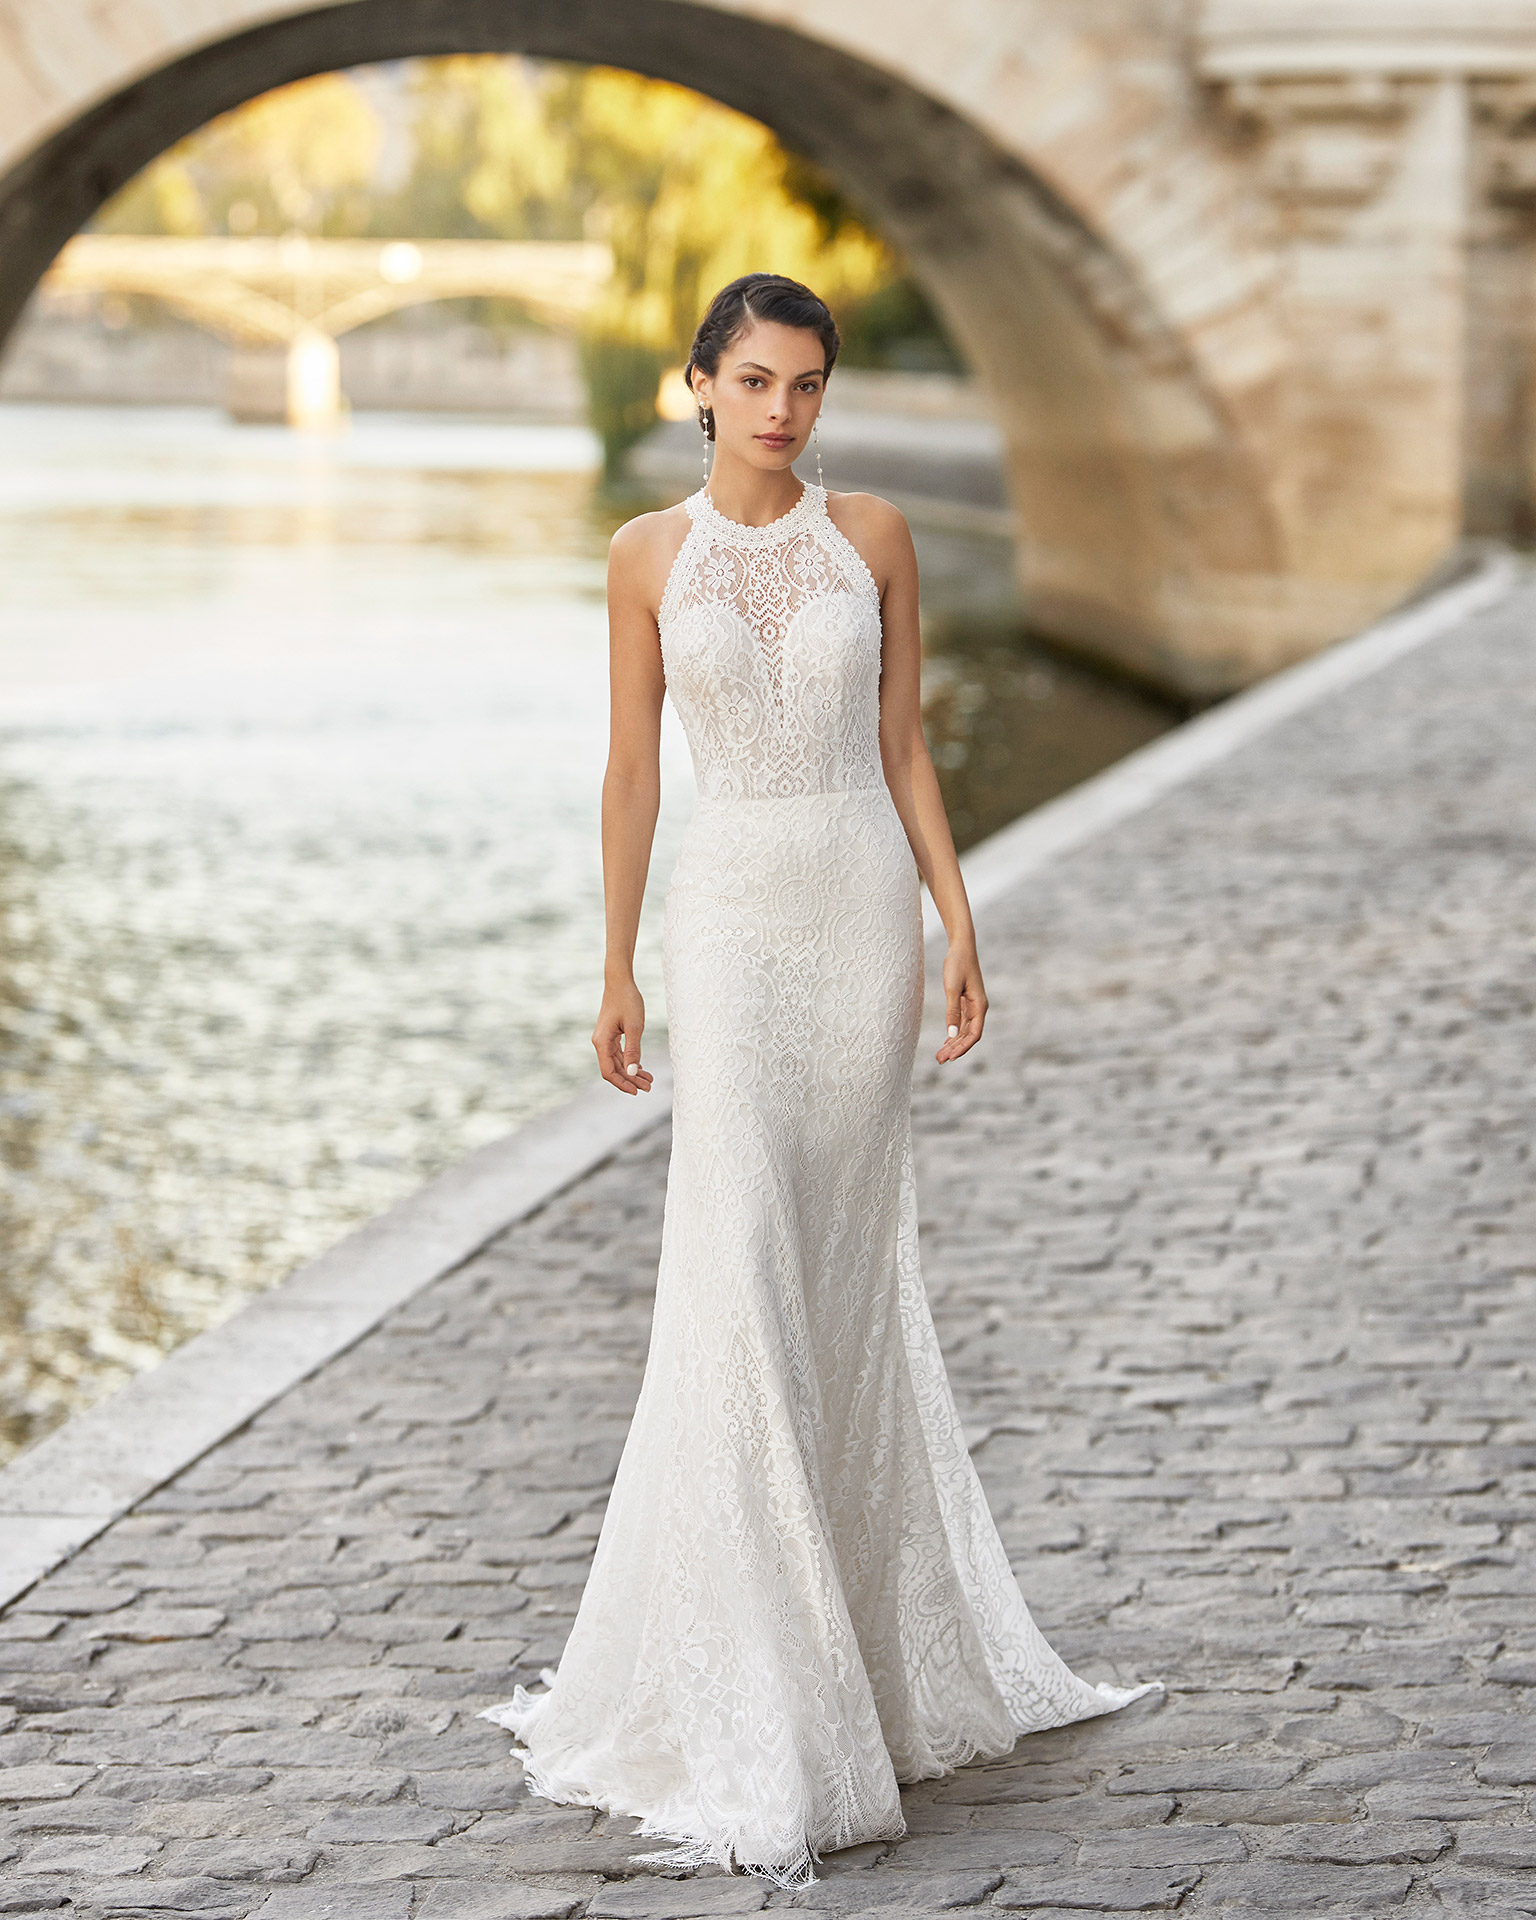 Lace wedding dress. Halter neckline with beading on collar and armholes, and back with shoulder straps attached to collar. 2021 ALMANOVIA Collection.